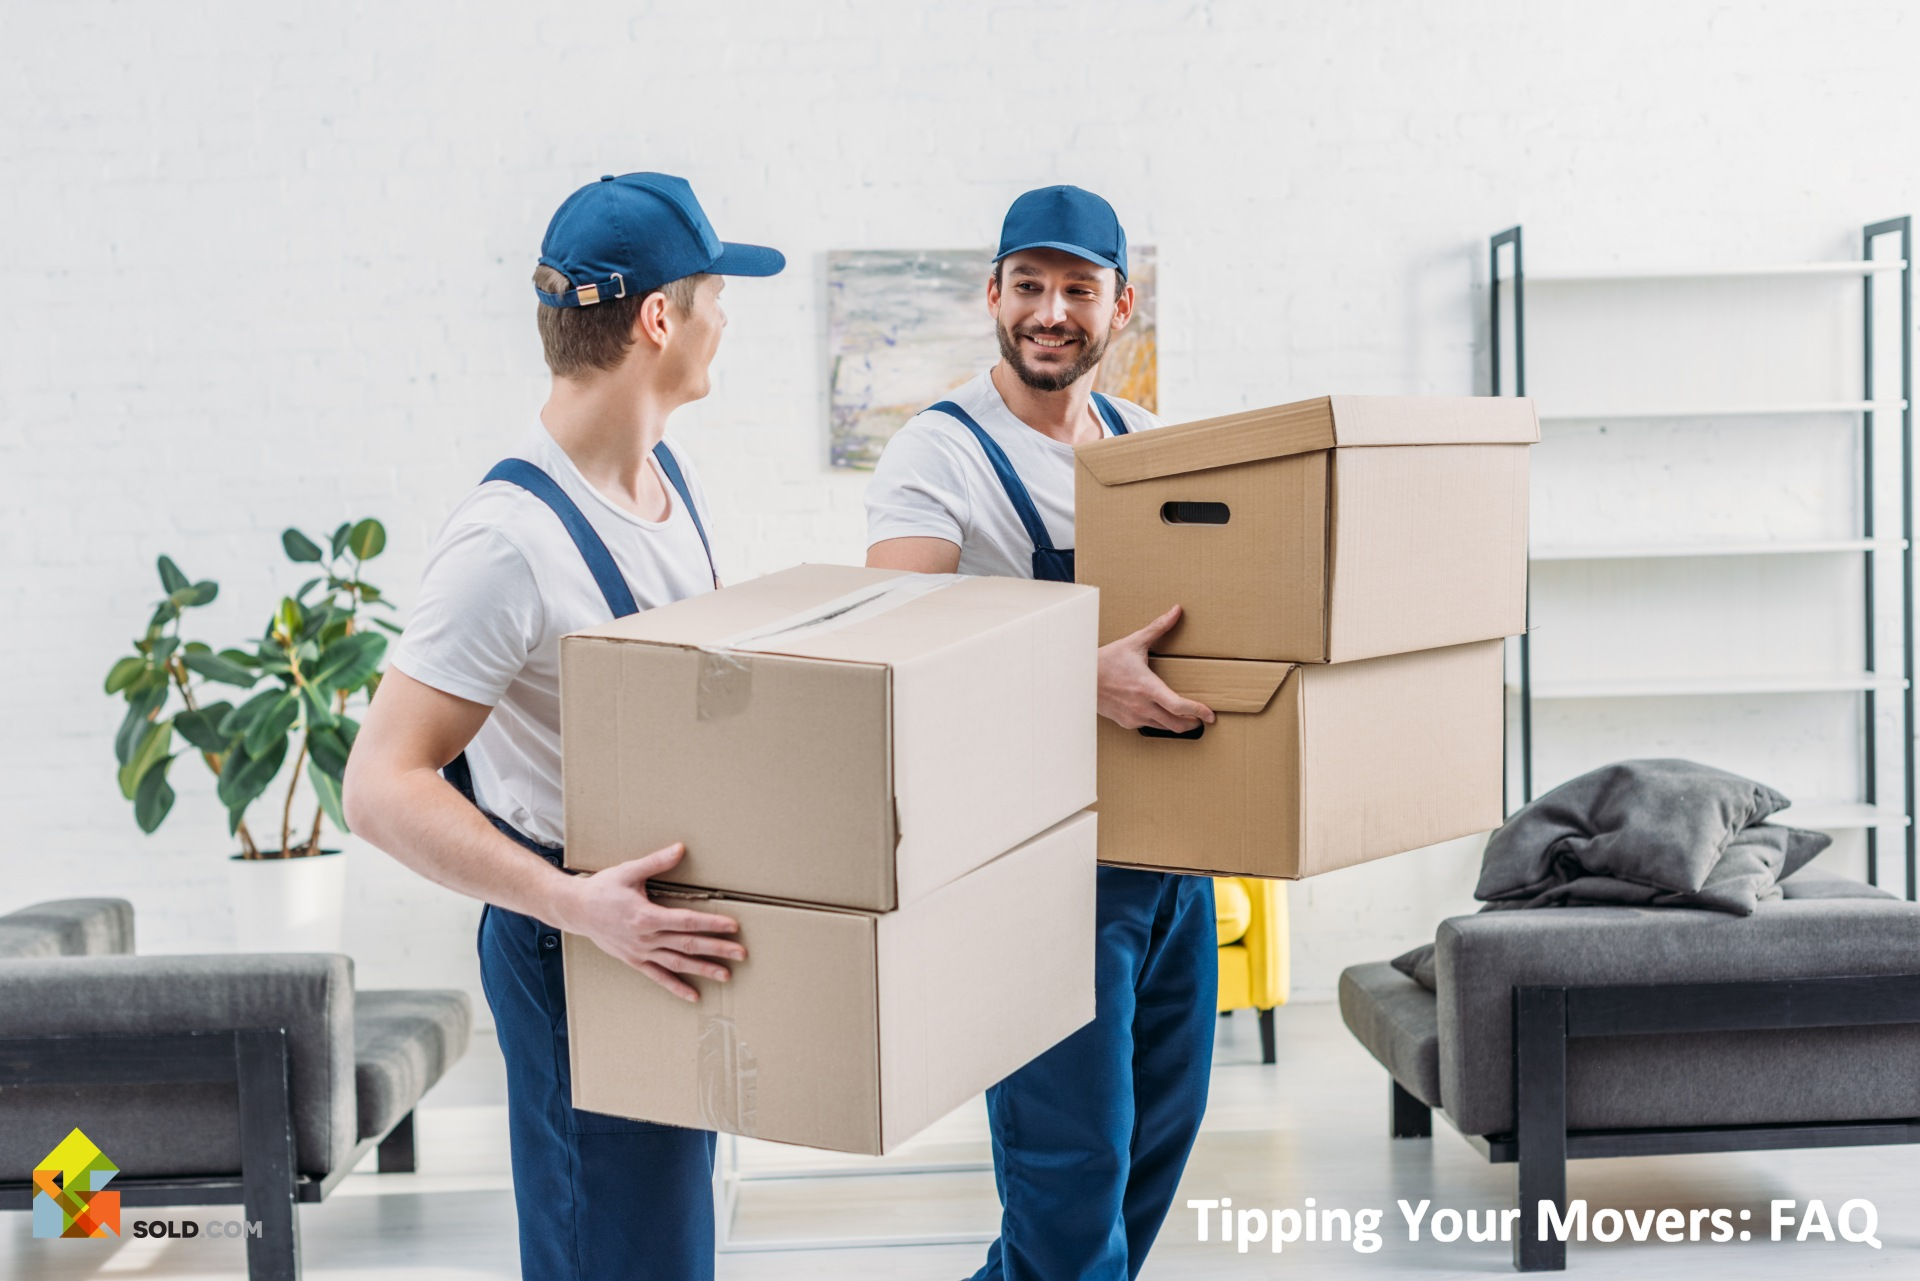 Tipping Your Movers: FAQ